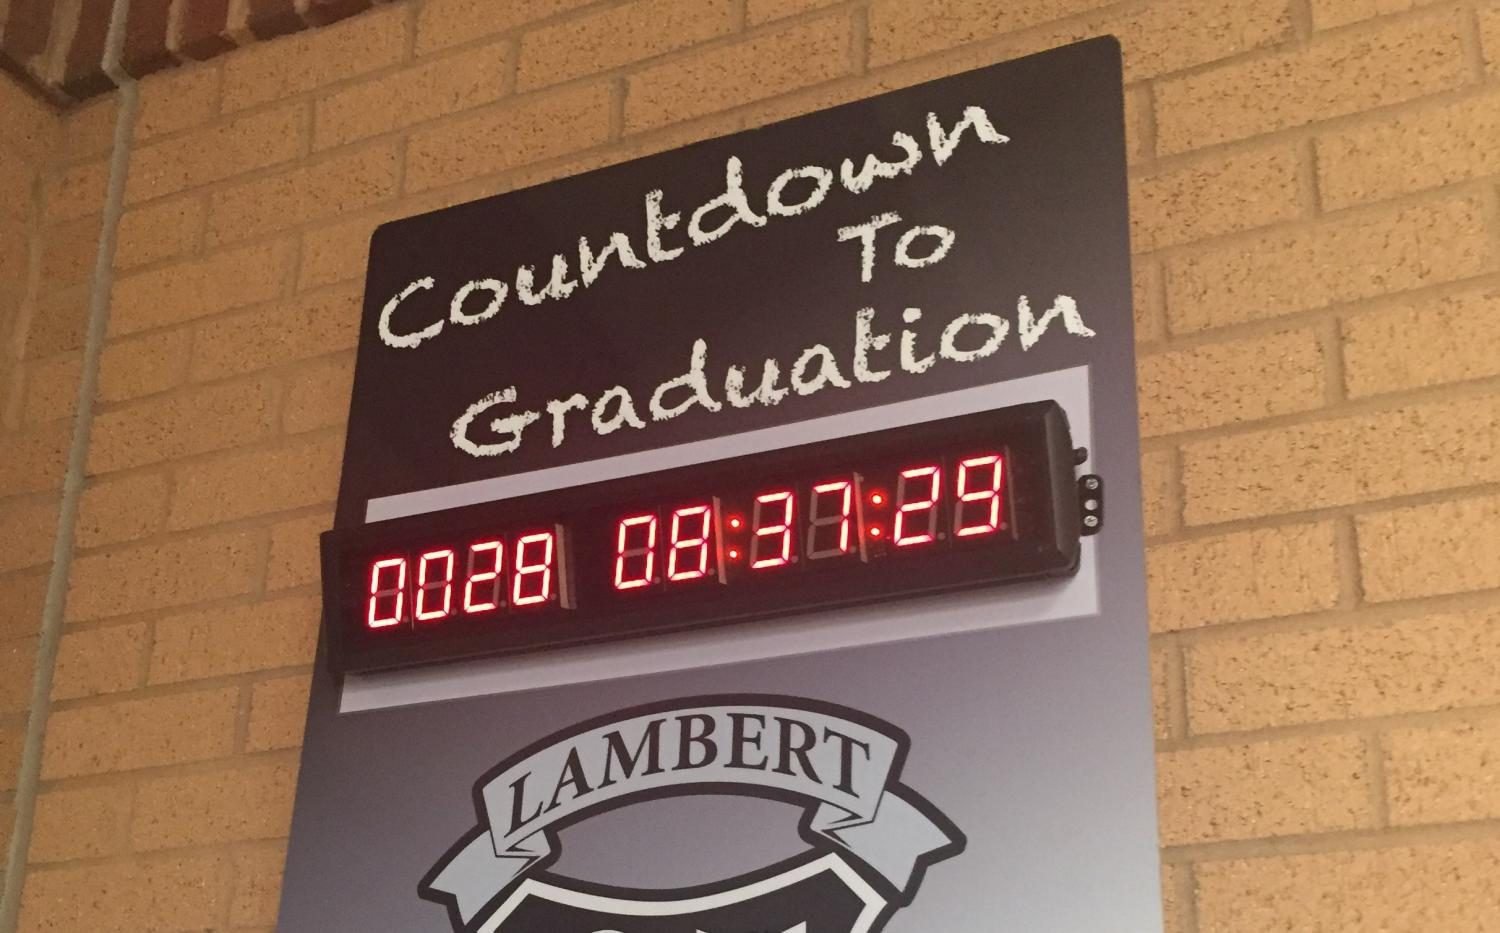 The+countdown+in+the+hallway+serves+as+a+visual+reminder+to+how+quickly+graduation+is+approaching+%28Photo+by+Colin+Masterson%29